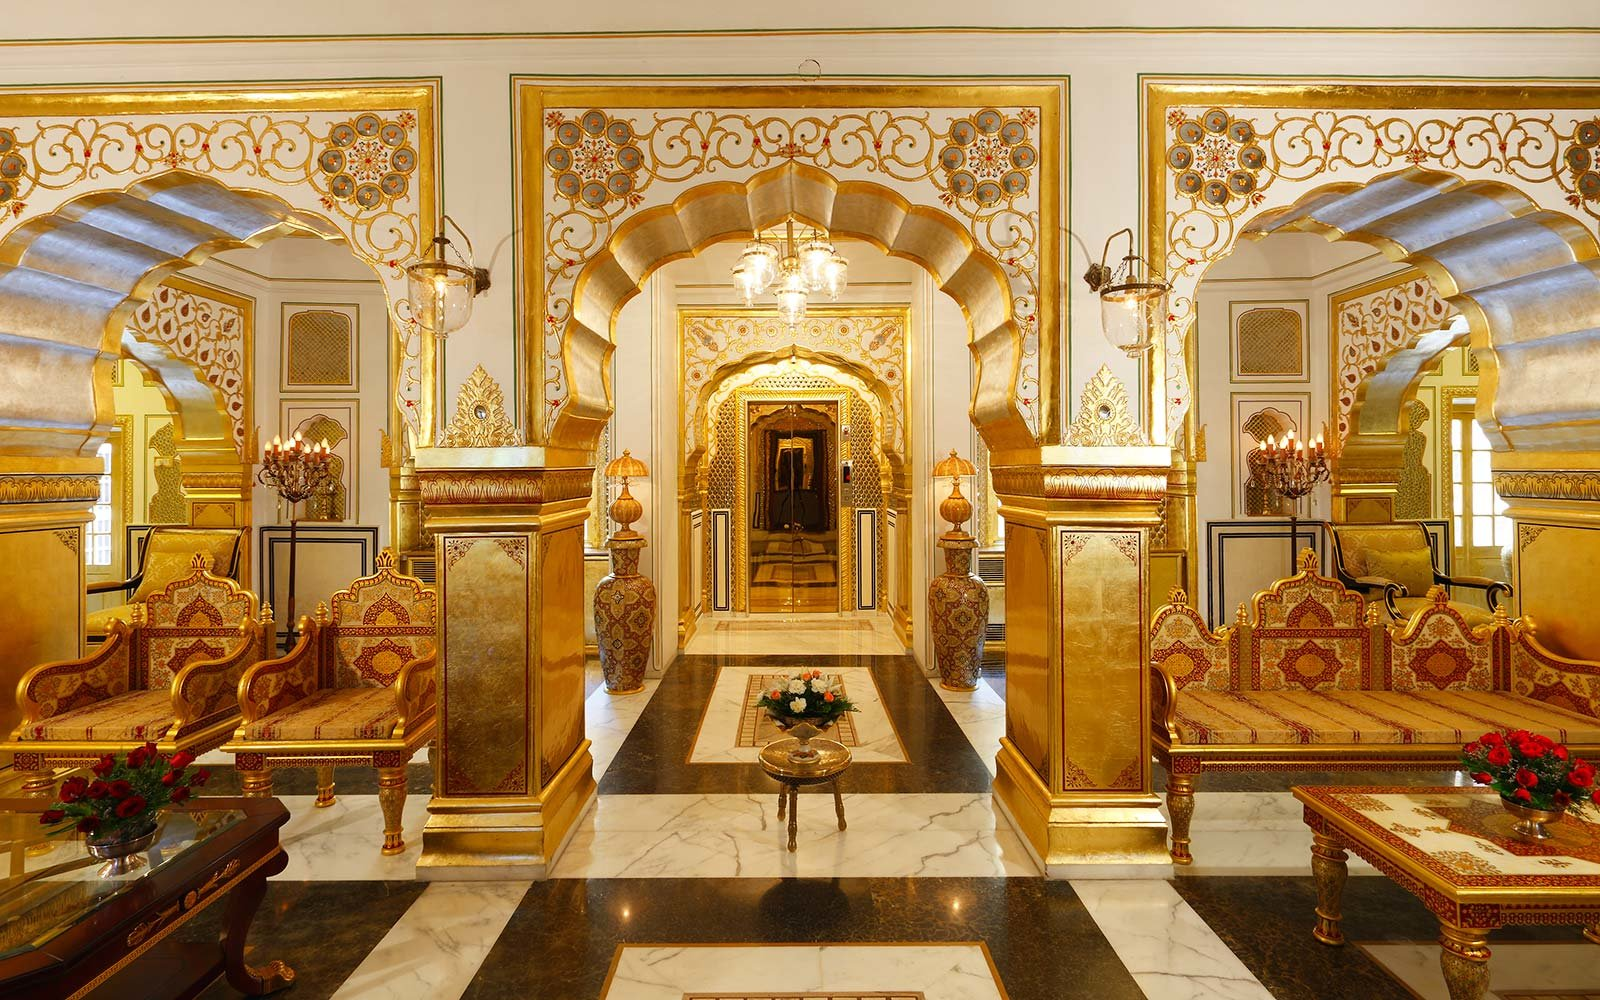 The Raj Palace Jaipur India Maharaja's Pavilion Suite